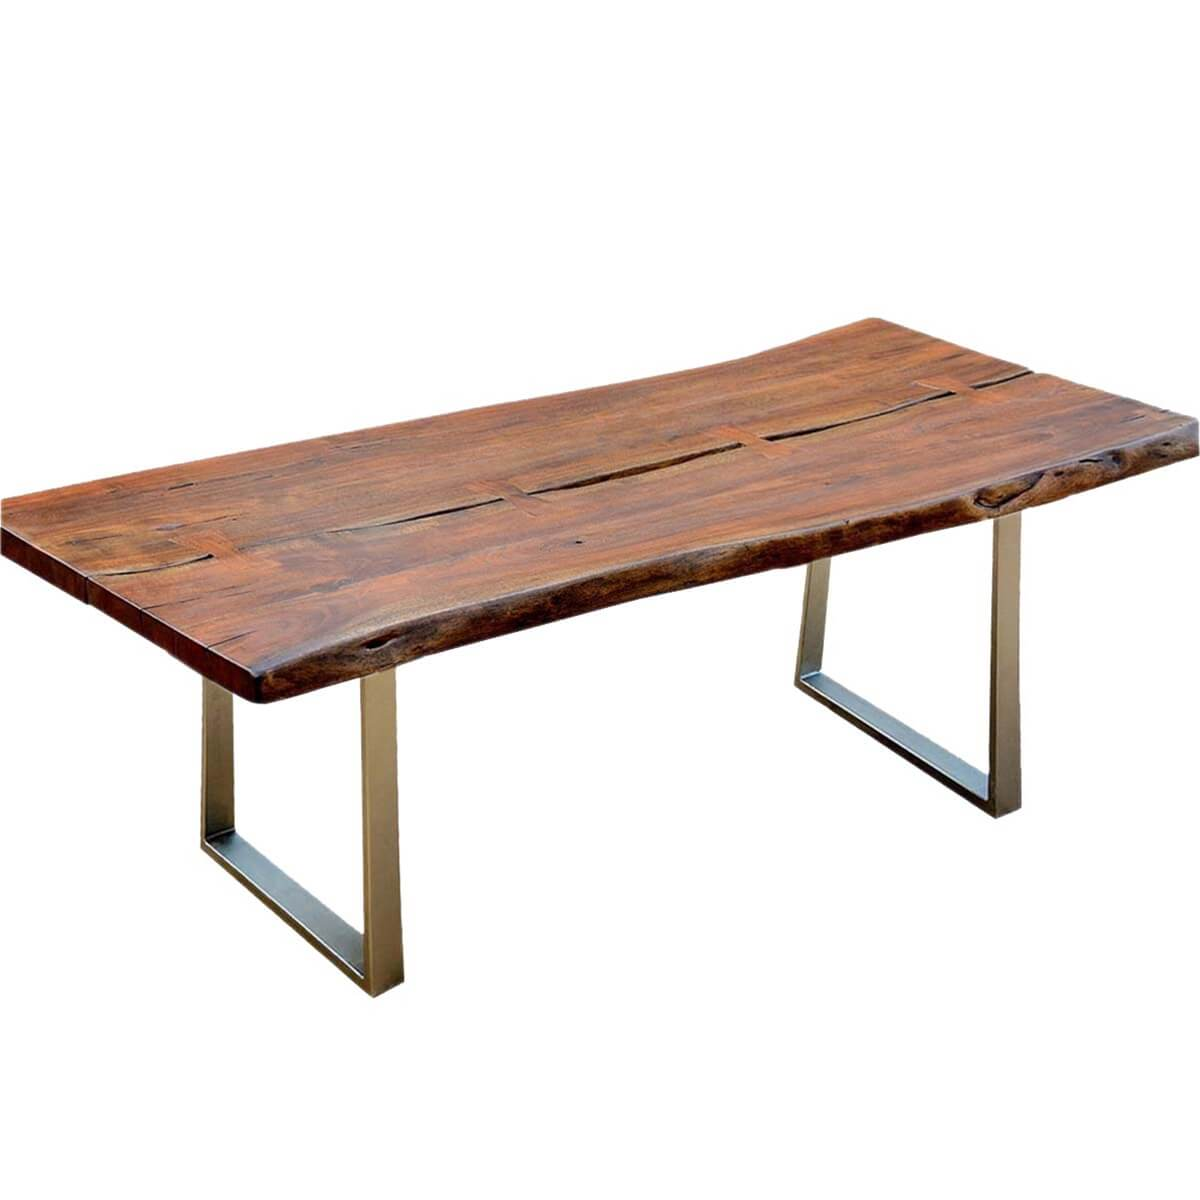 Live edge acacia wood iron rustic large dining table for On the dining table